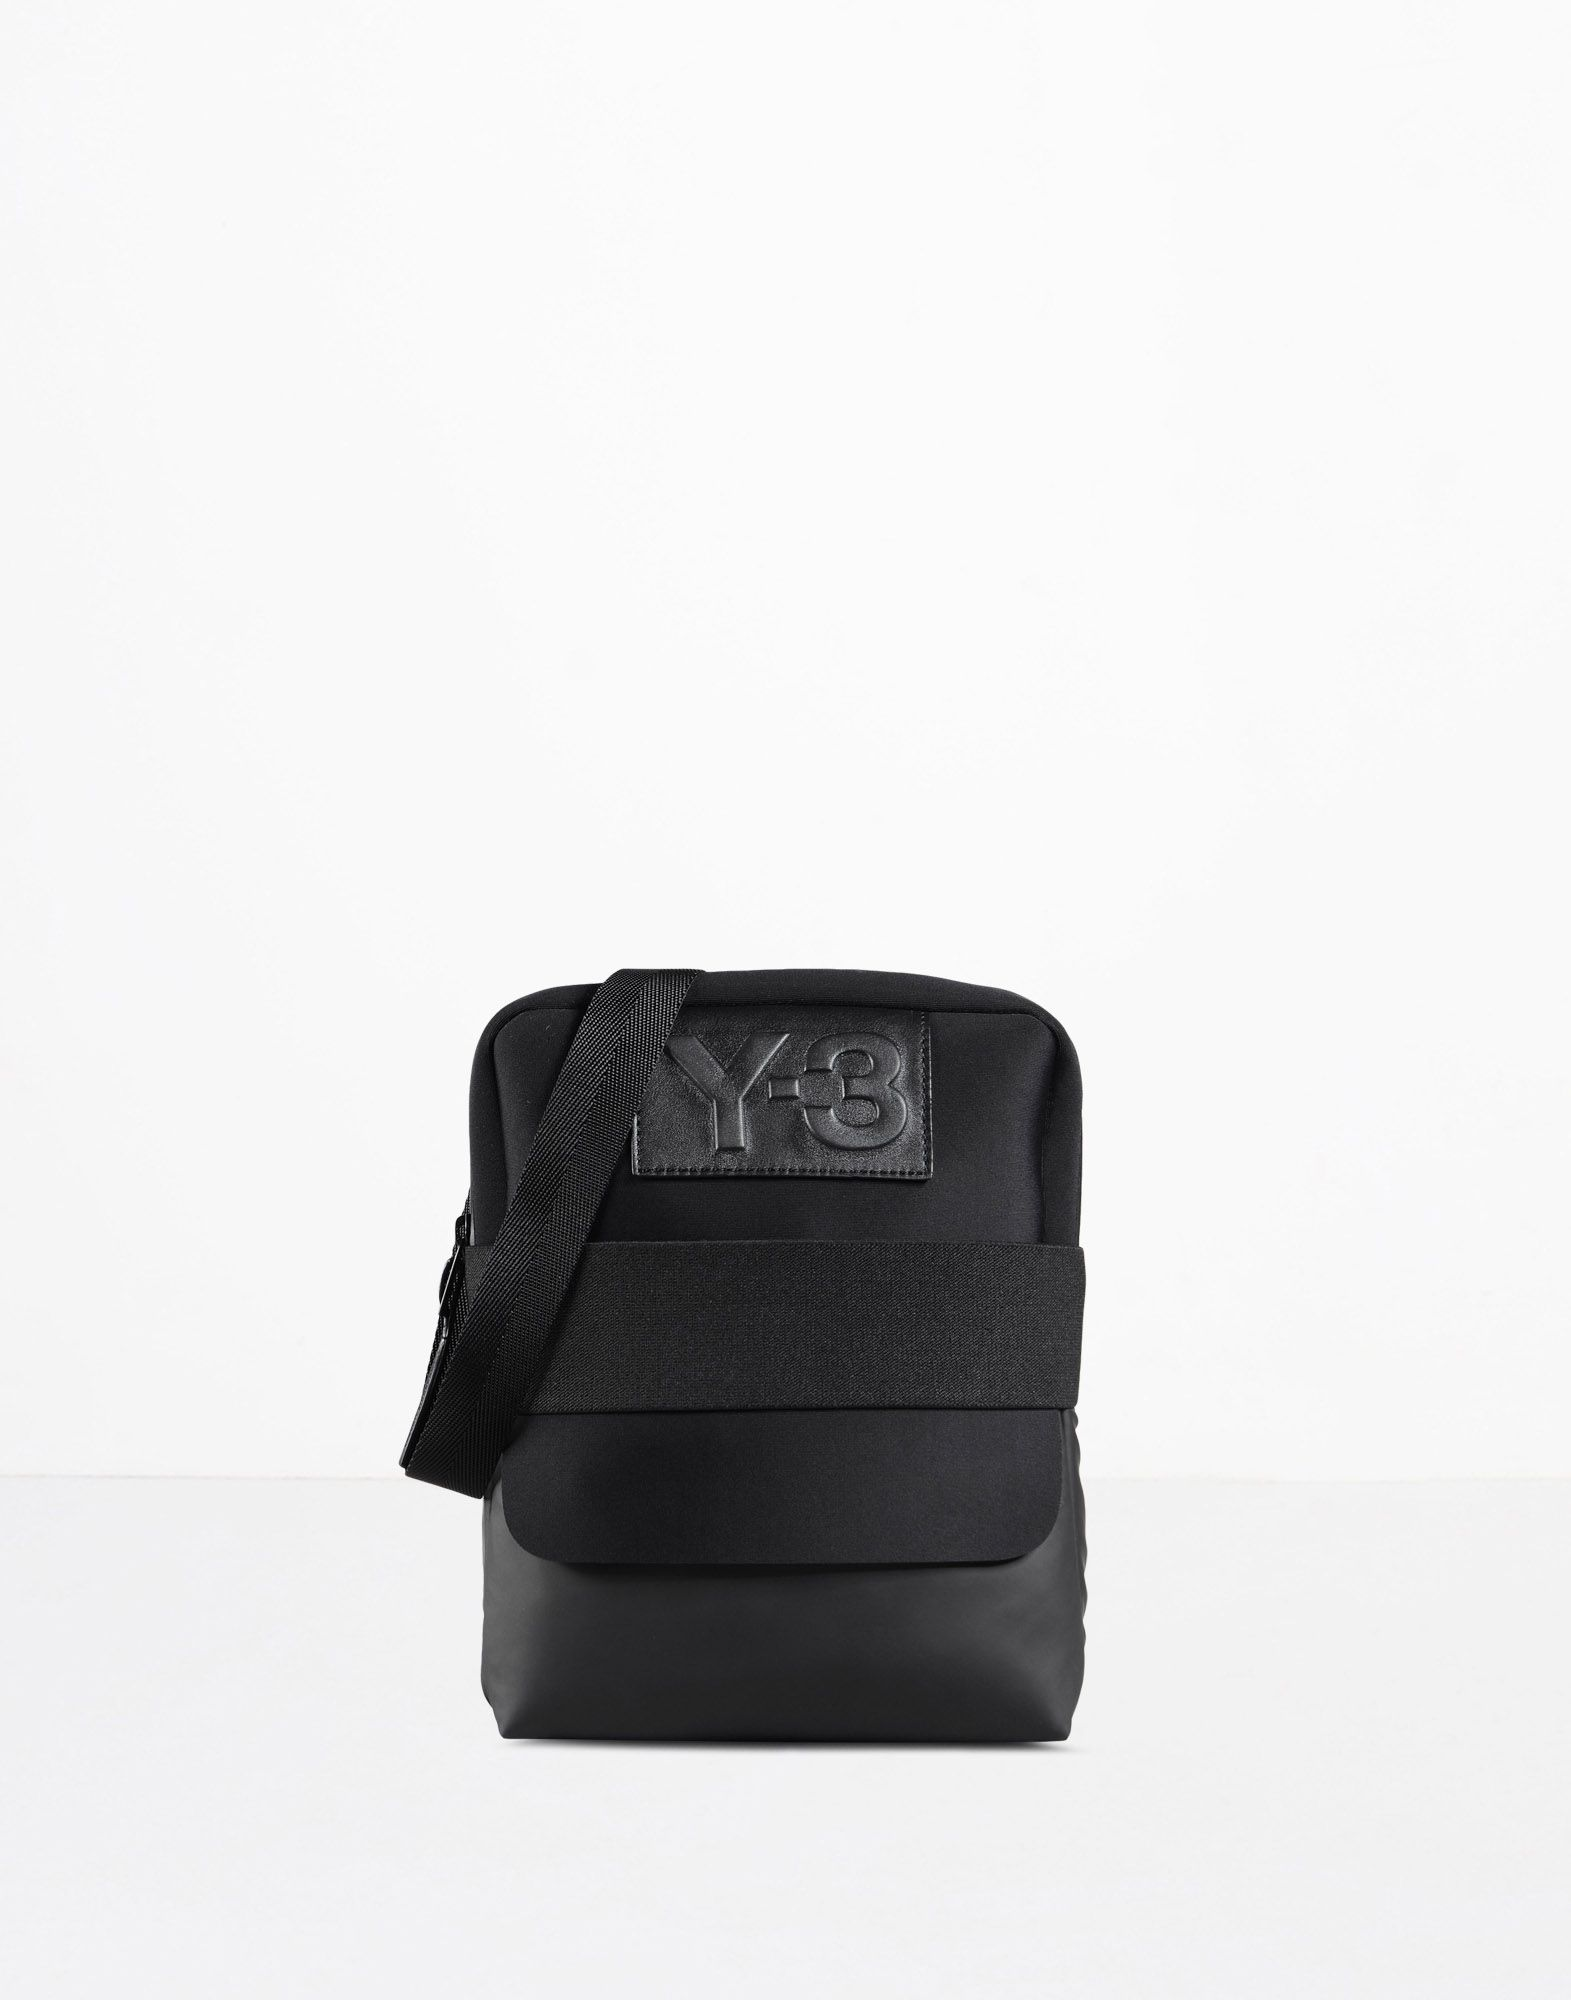 53a1020b60f Y 3 QASA REPORTER Messenger Bags   Adidas Y-3 Official Site